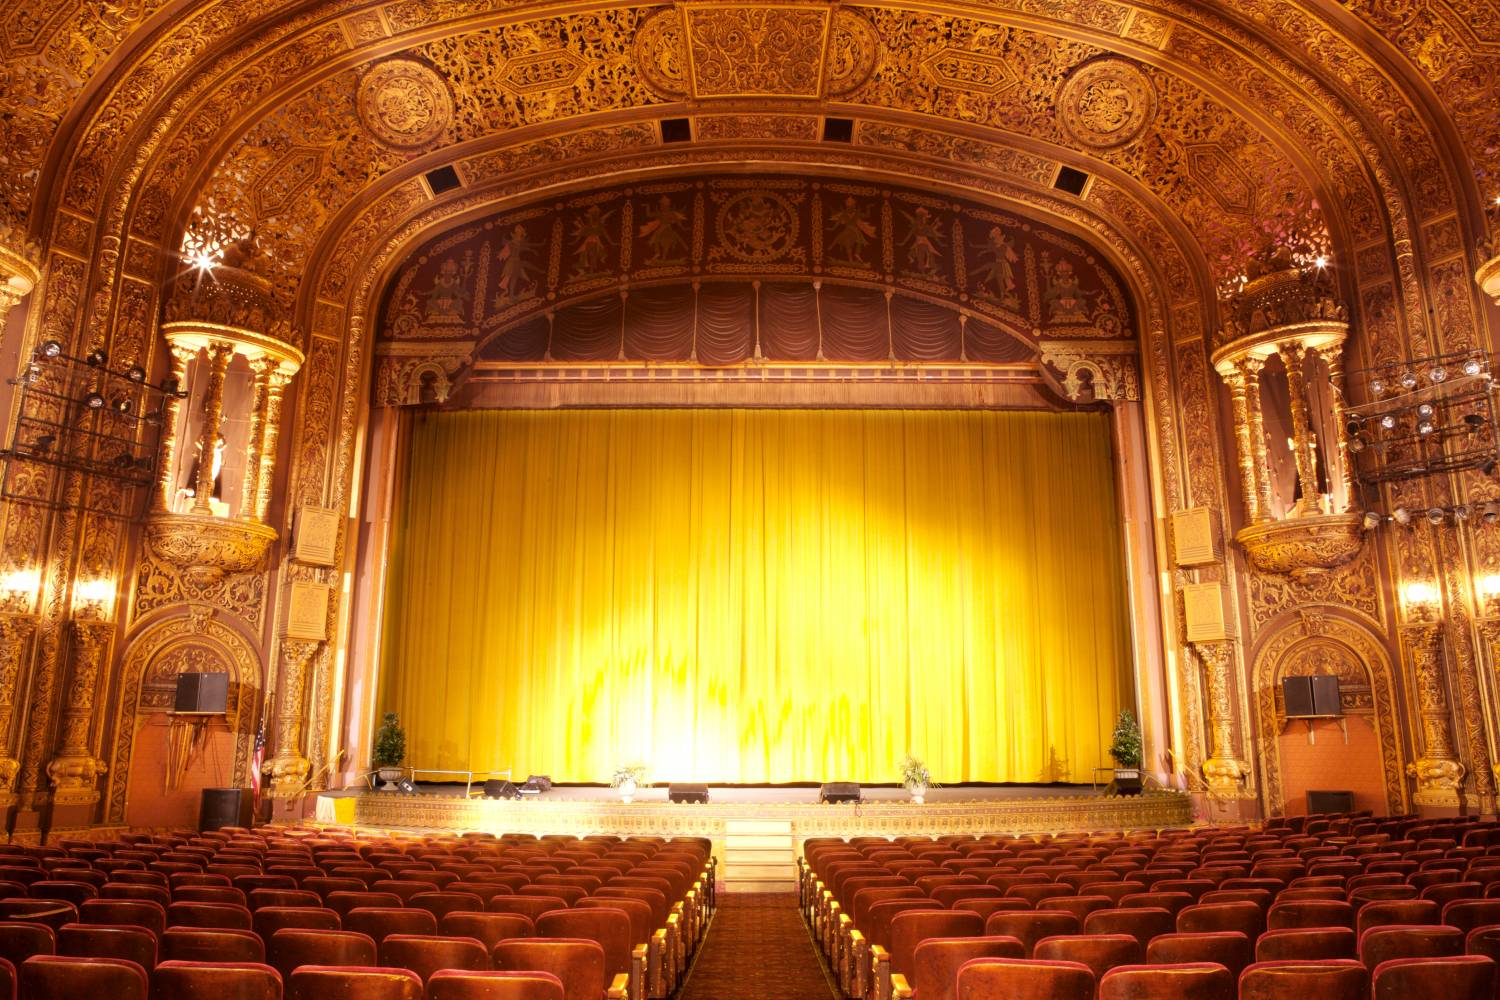 United Palace of Cultural Arts, stage interior